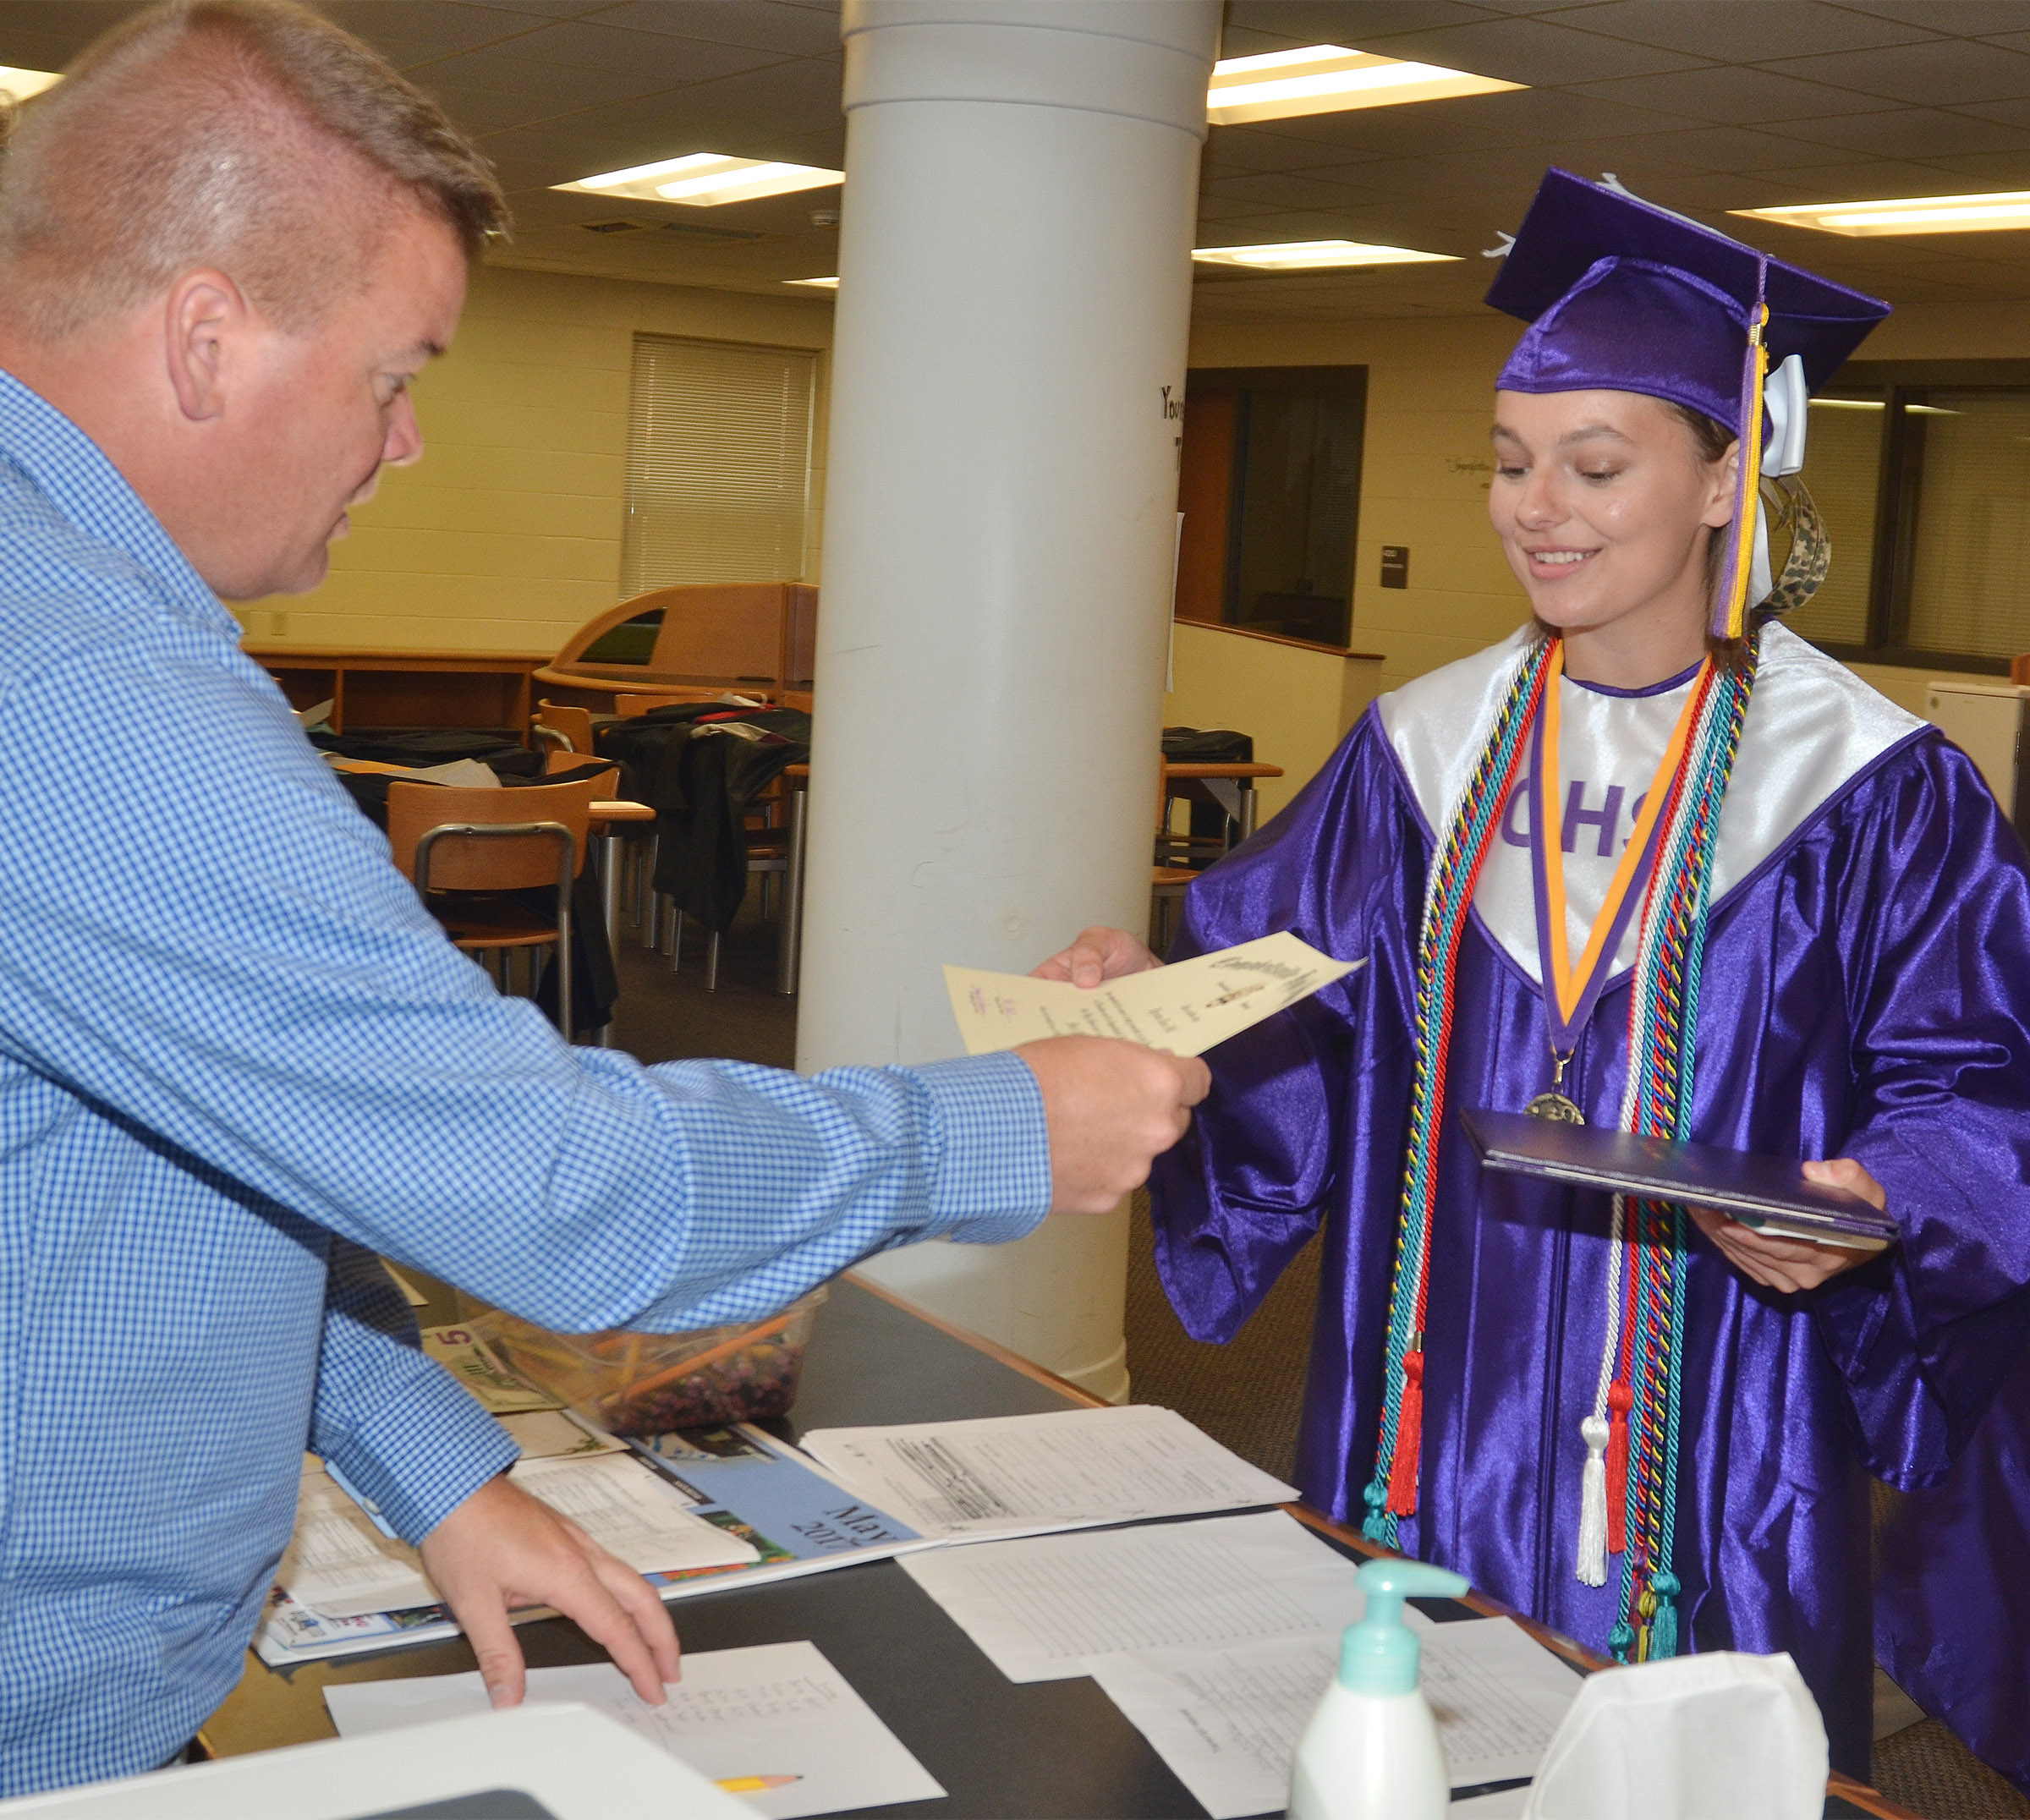 CHS graduate Kyrsten Hill receives her diploma from teacher Dale Estes.